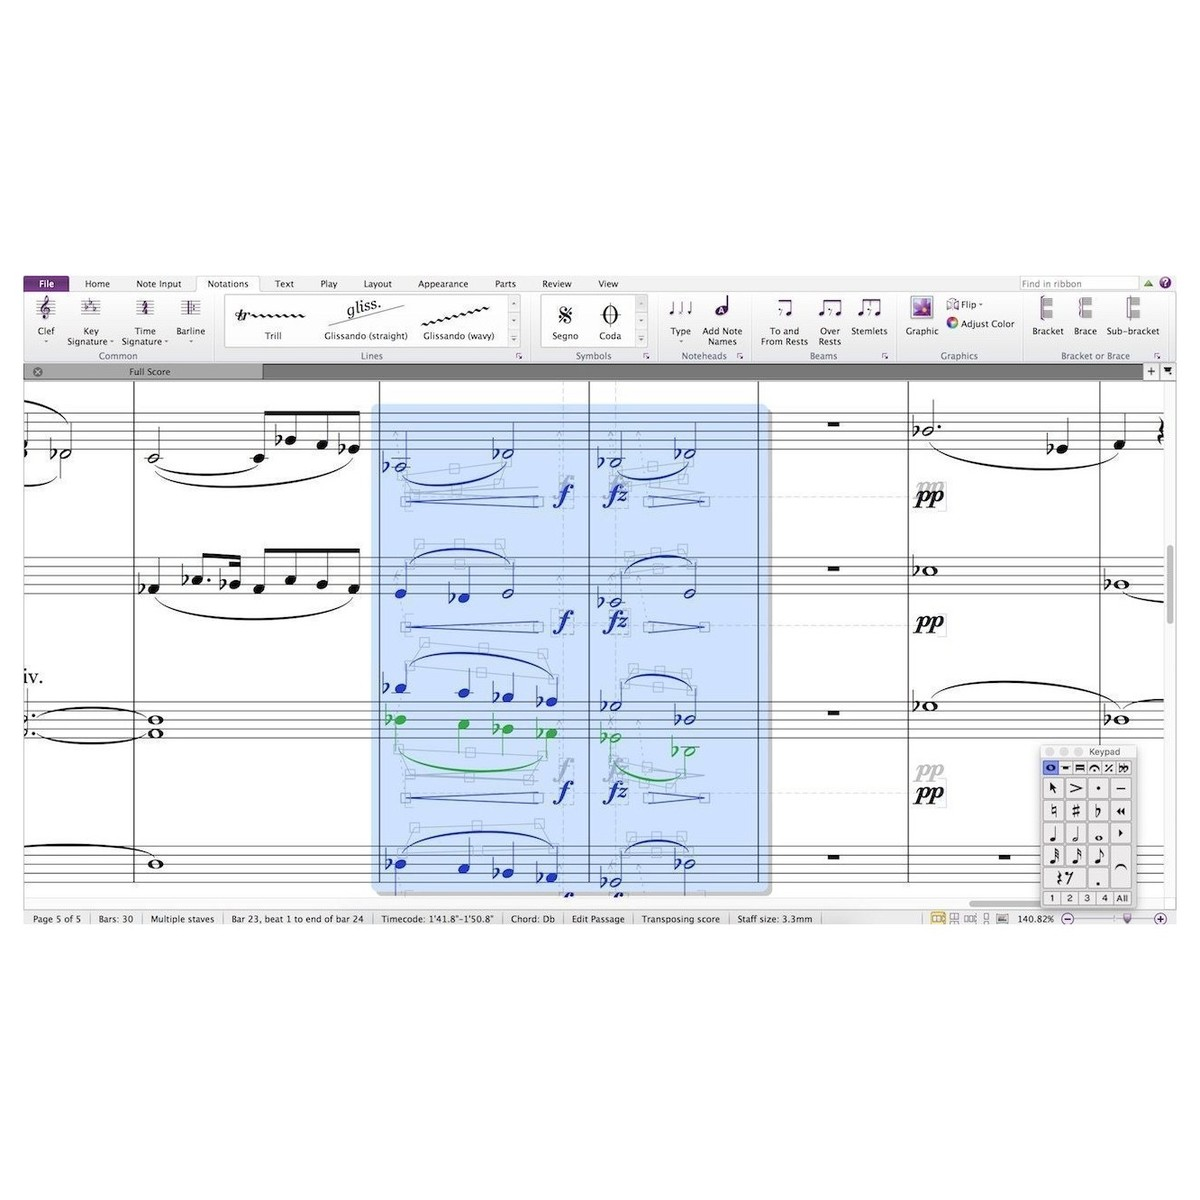 Sibelius perpetual licence at gear4music sibelius composing and notation software screenshot 2 loading zoom asfbconference2016 Gallery